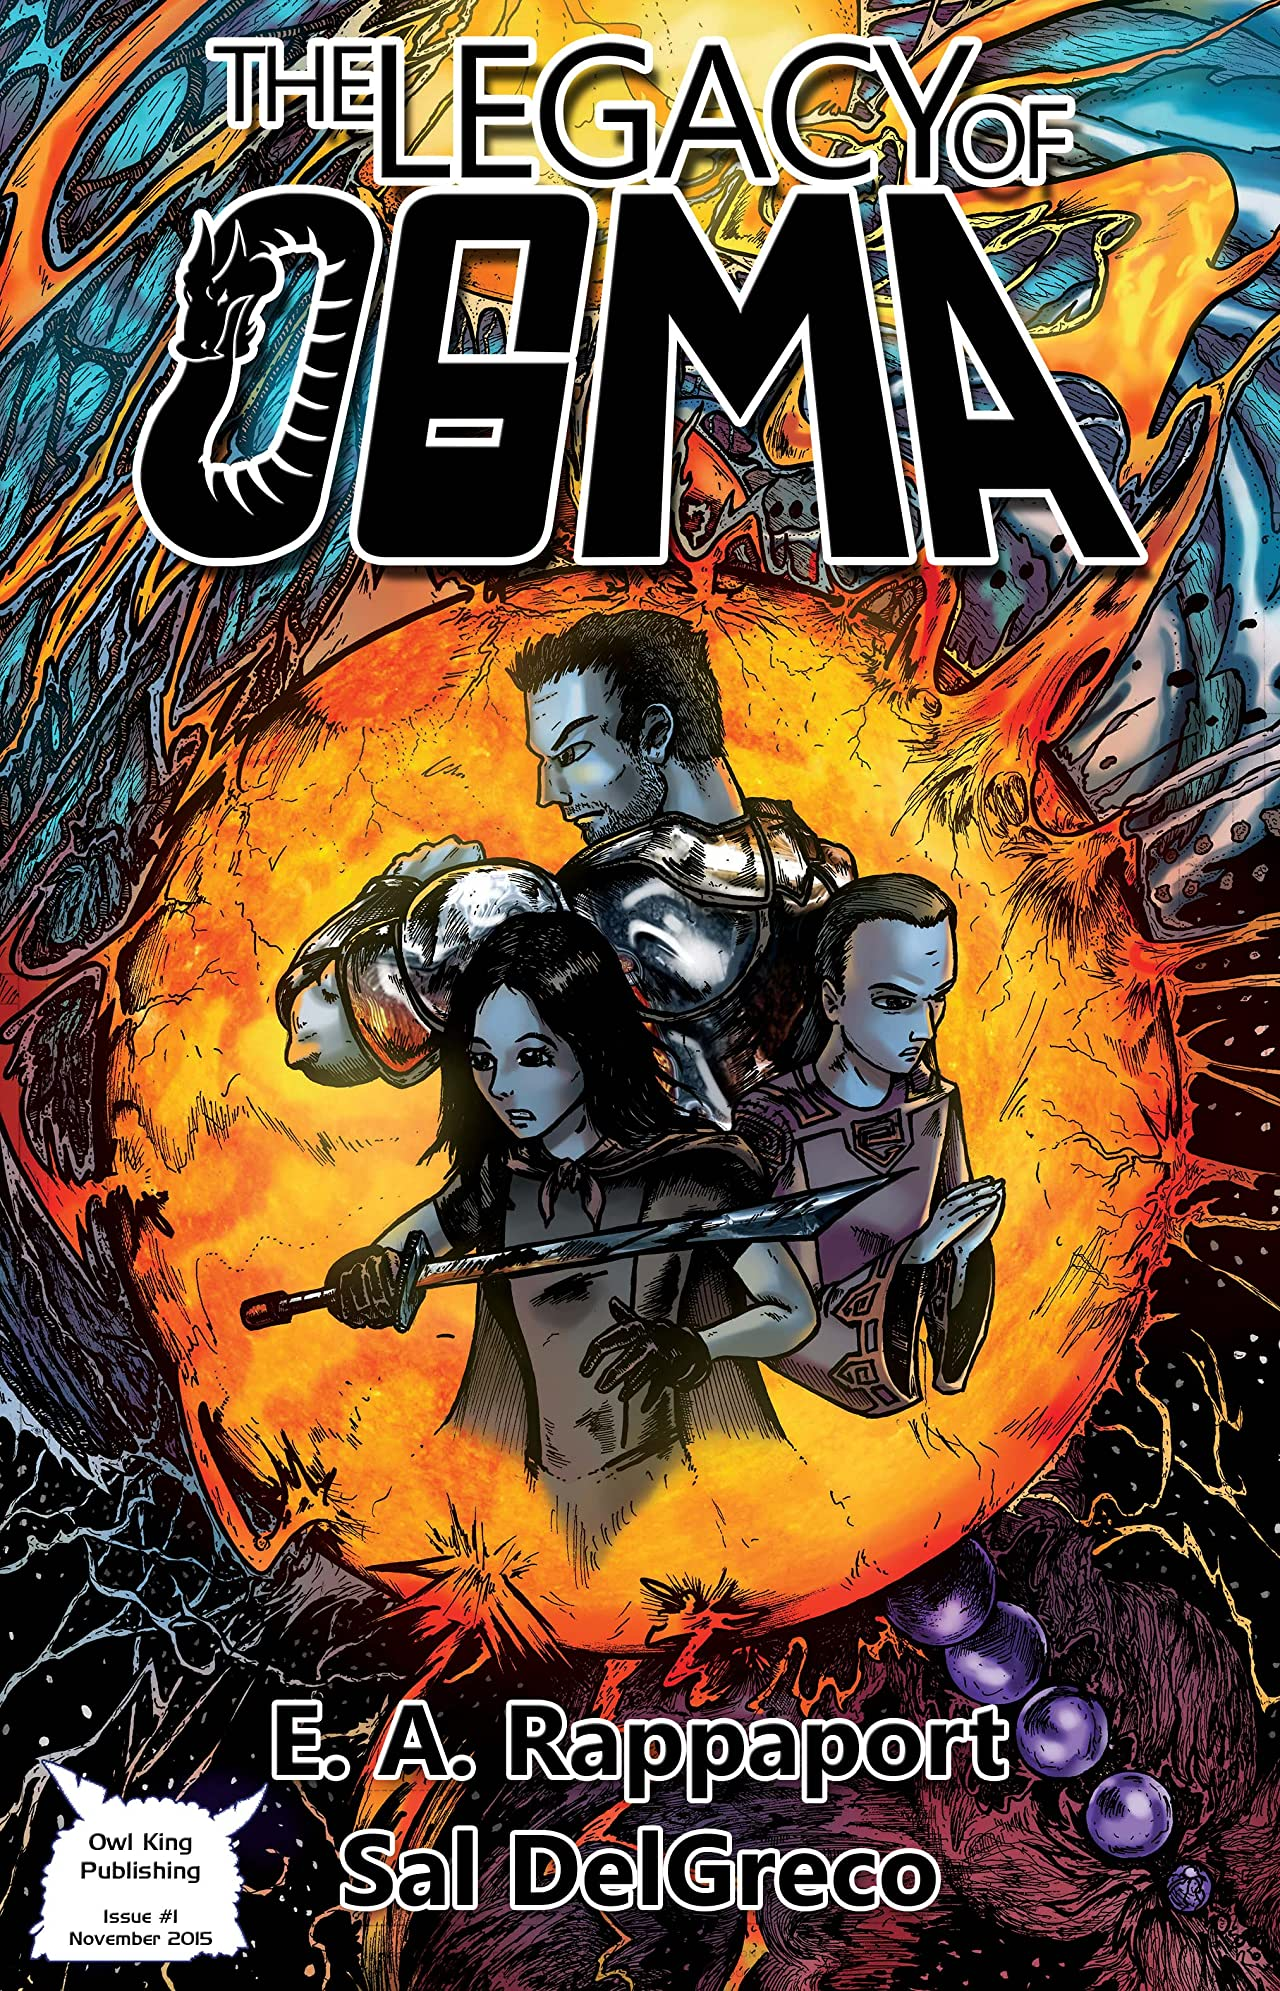 The Legacy of Ogma Vol. 1: The Mystery of the Weapons